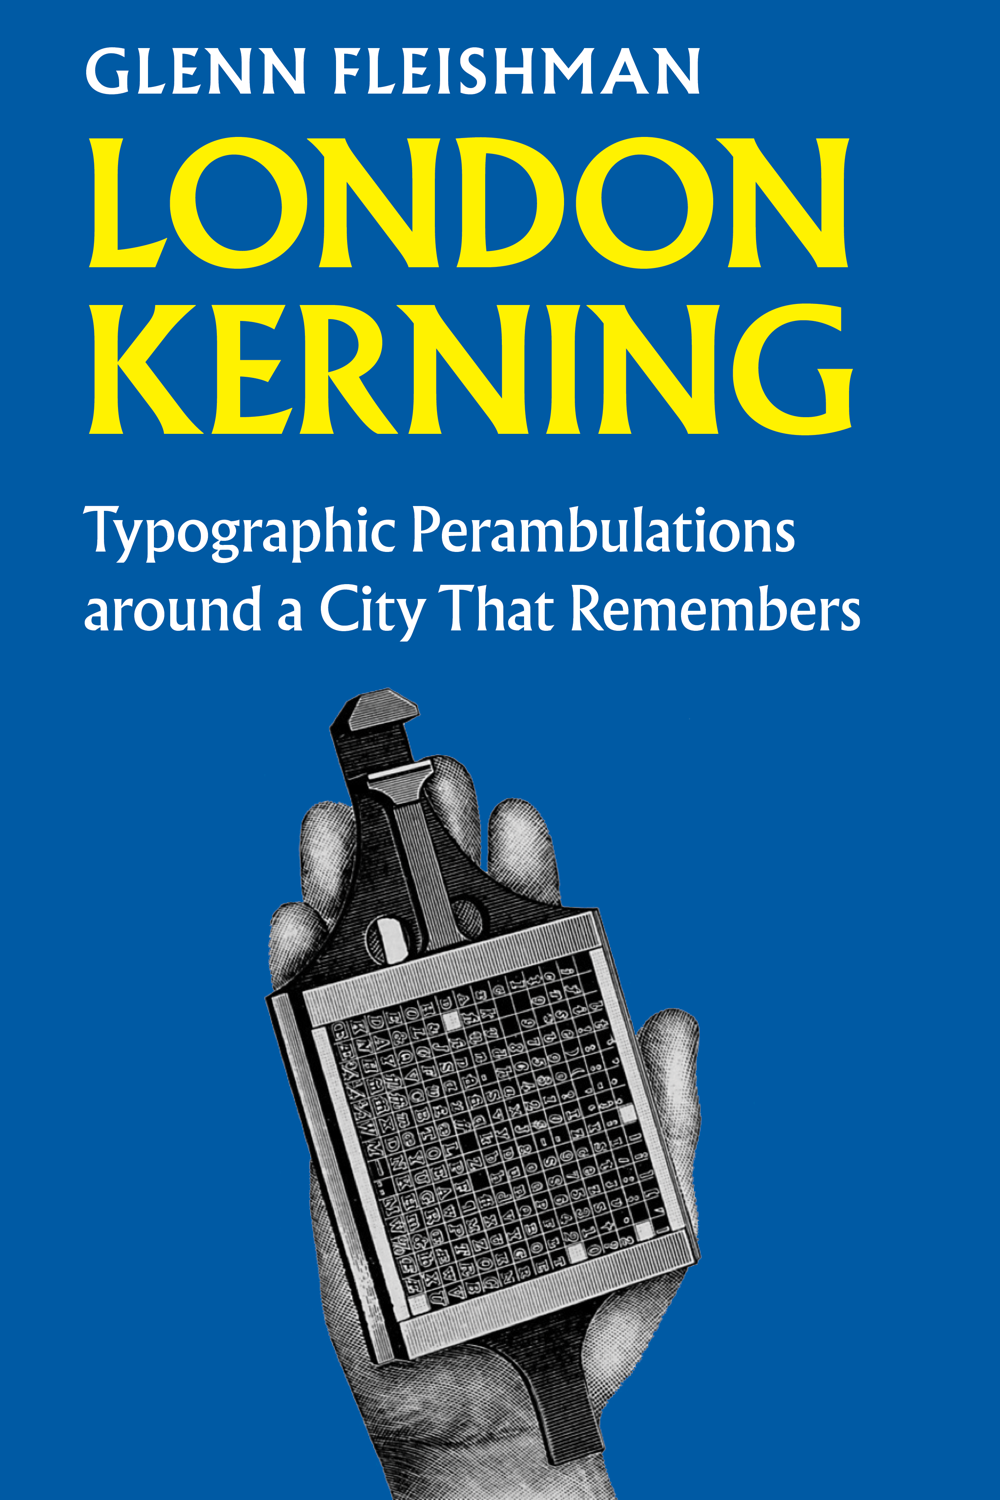 London Kerning cover small.png